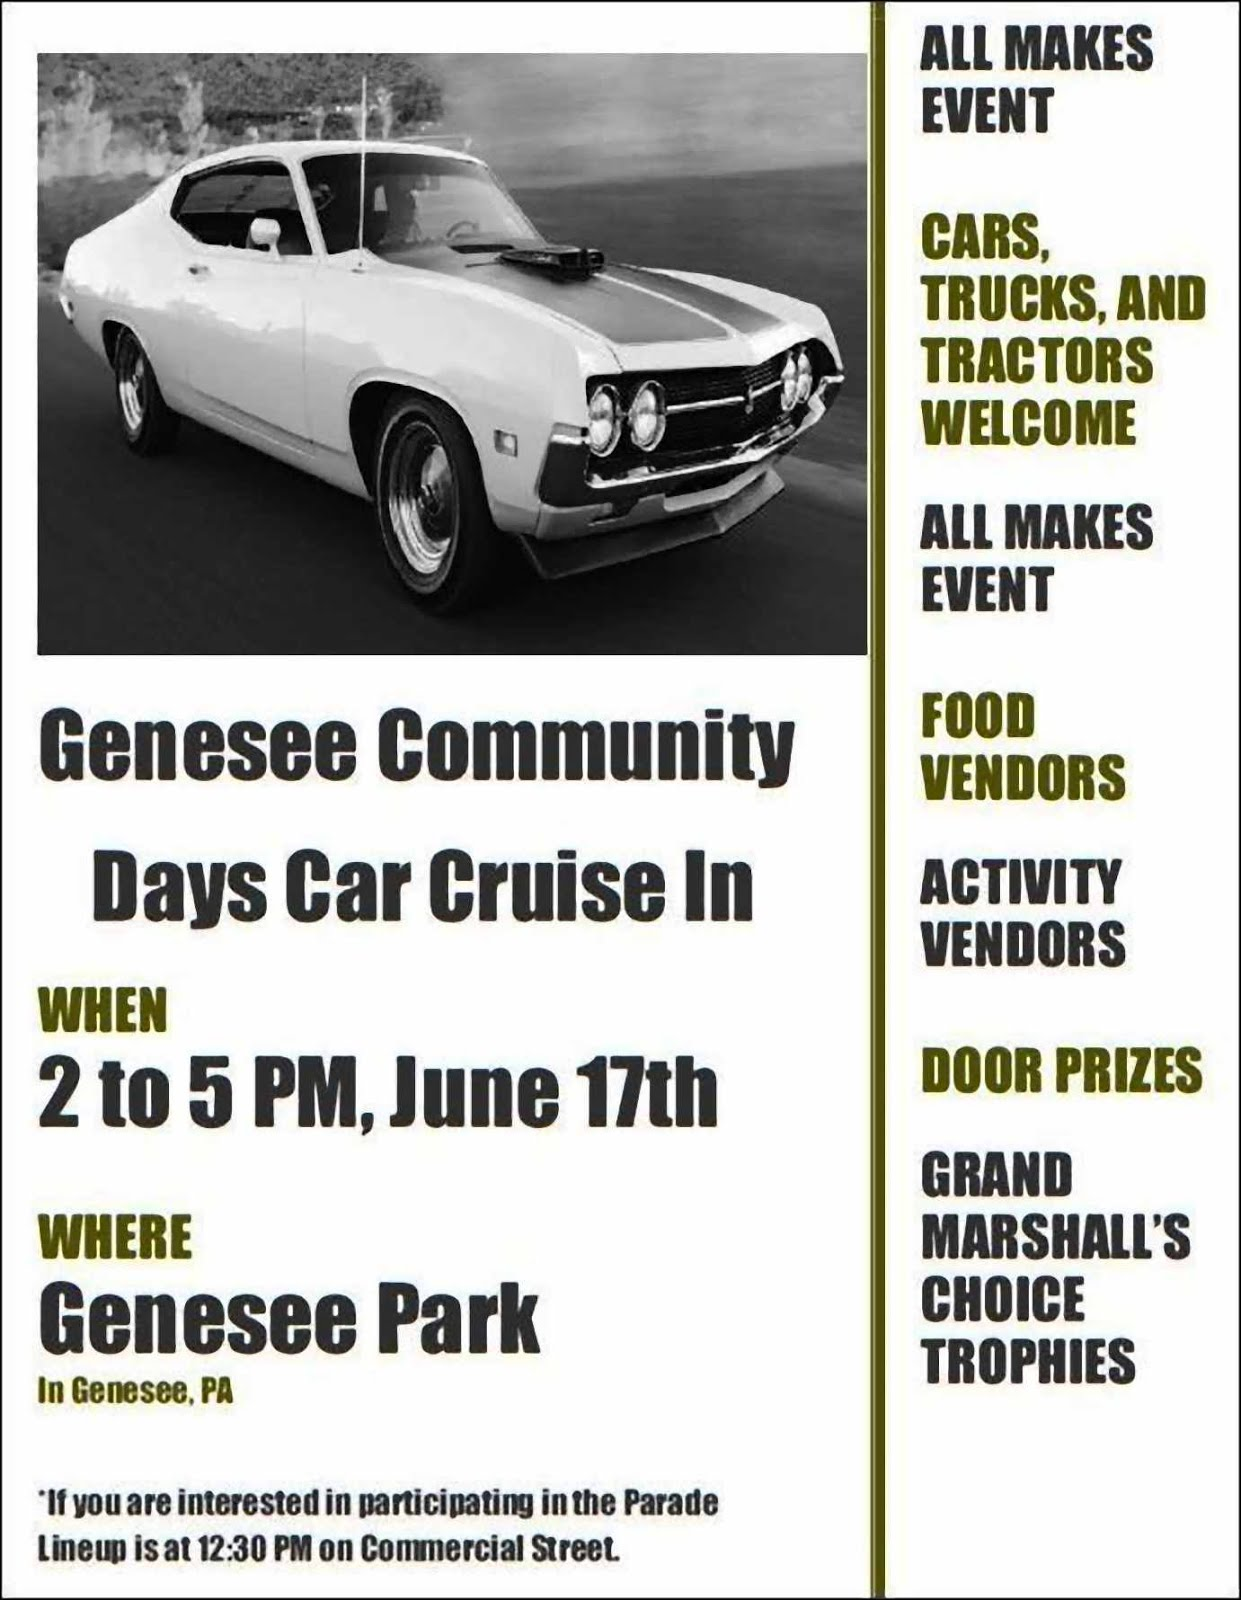 Solomon 39 S Words For The Wise Rabies Clinic Saturday June 10 From 1 To 4 Pm At Galeton Park Gazebo